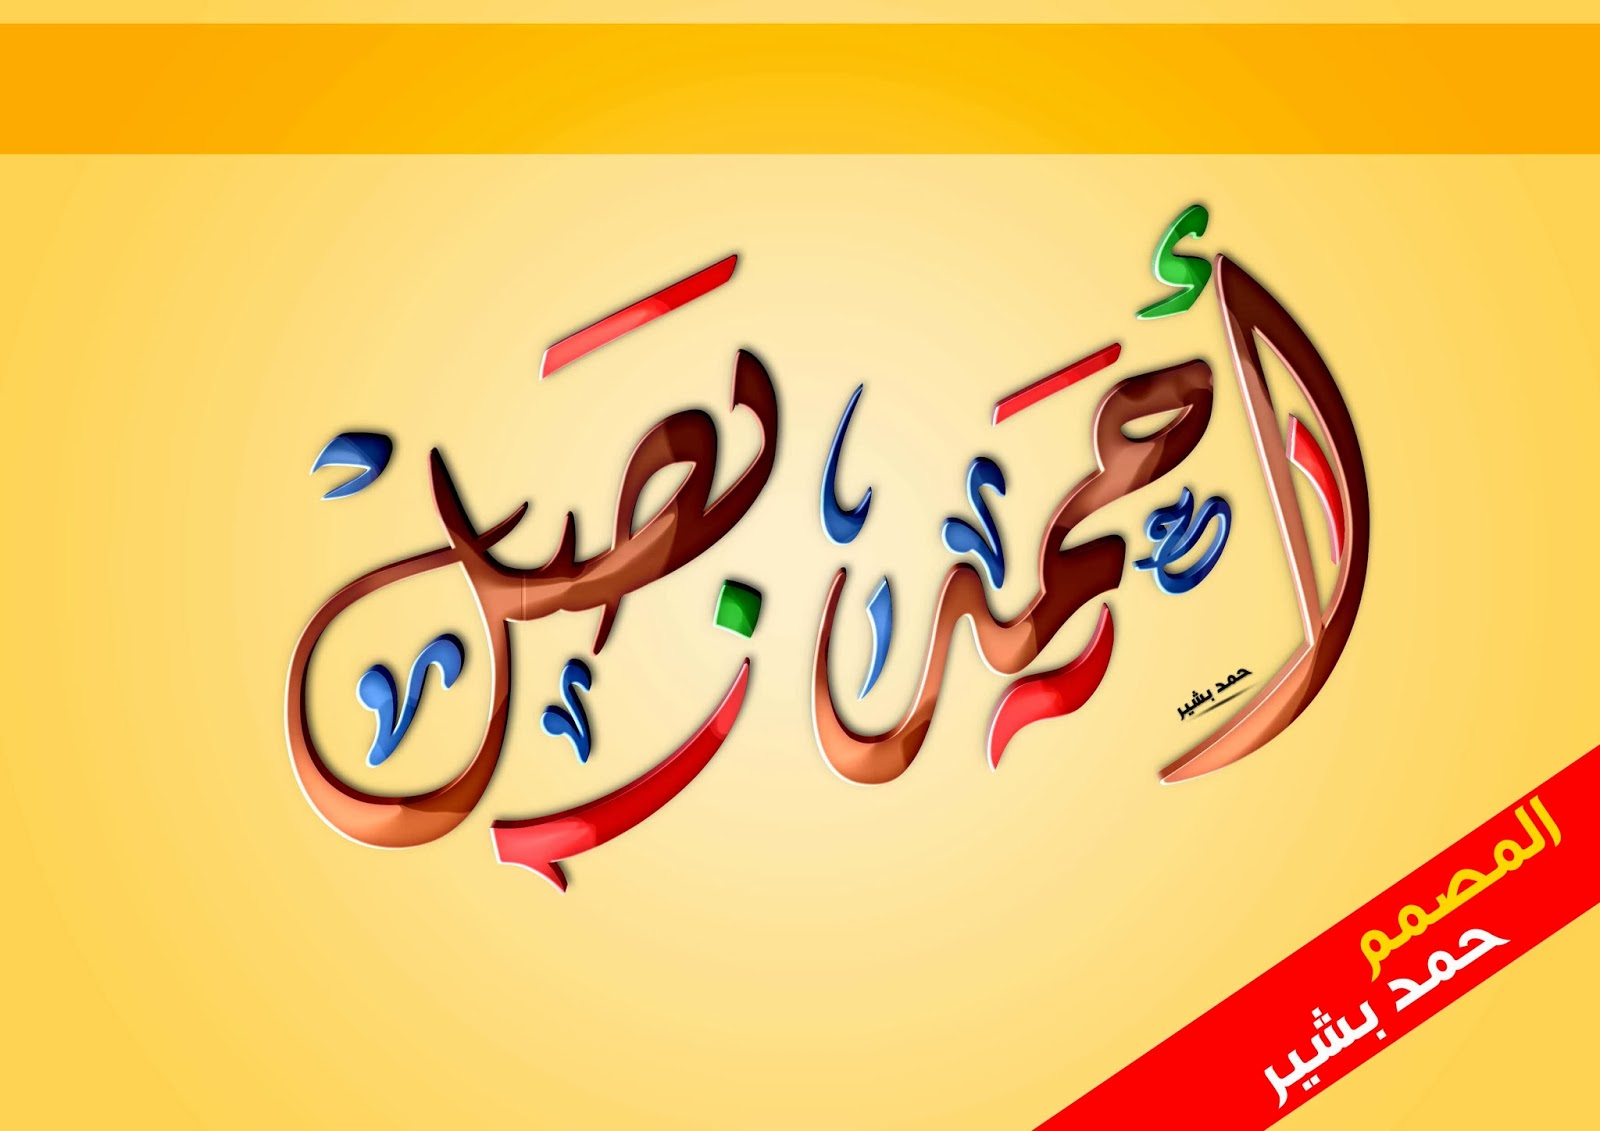 زخرف اسمك كما تشاء For Android Apk Download 5